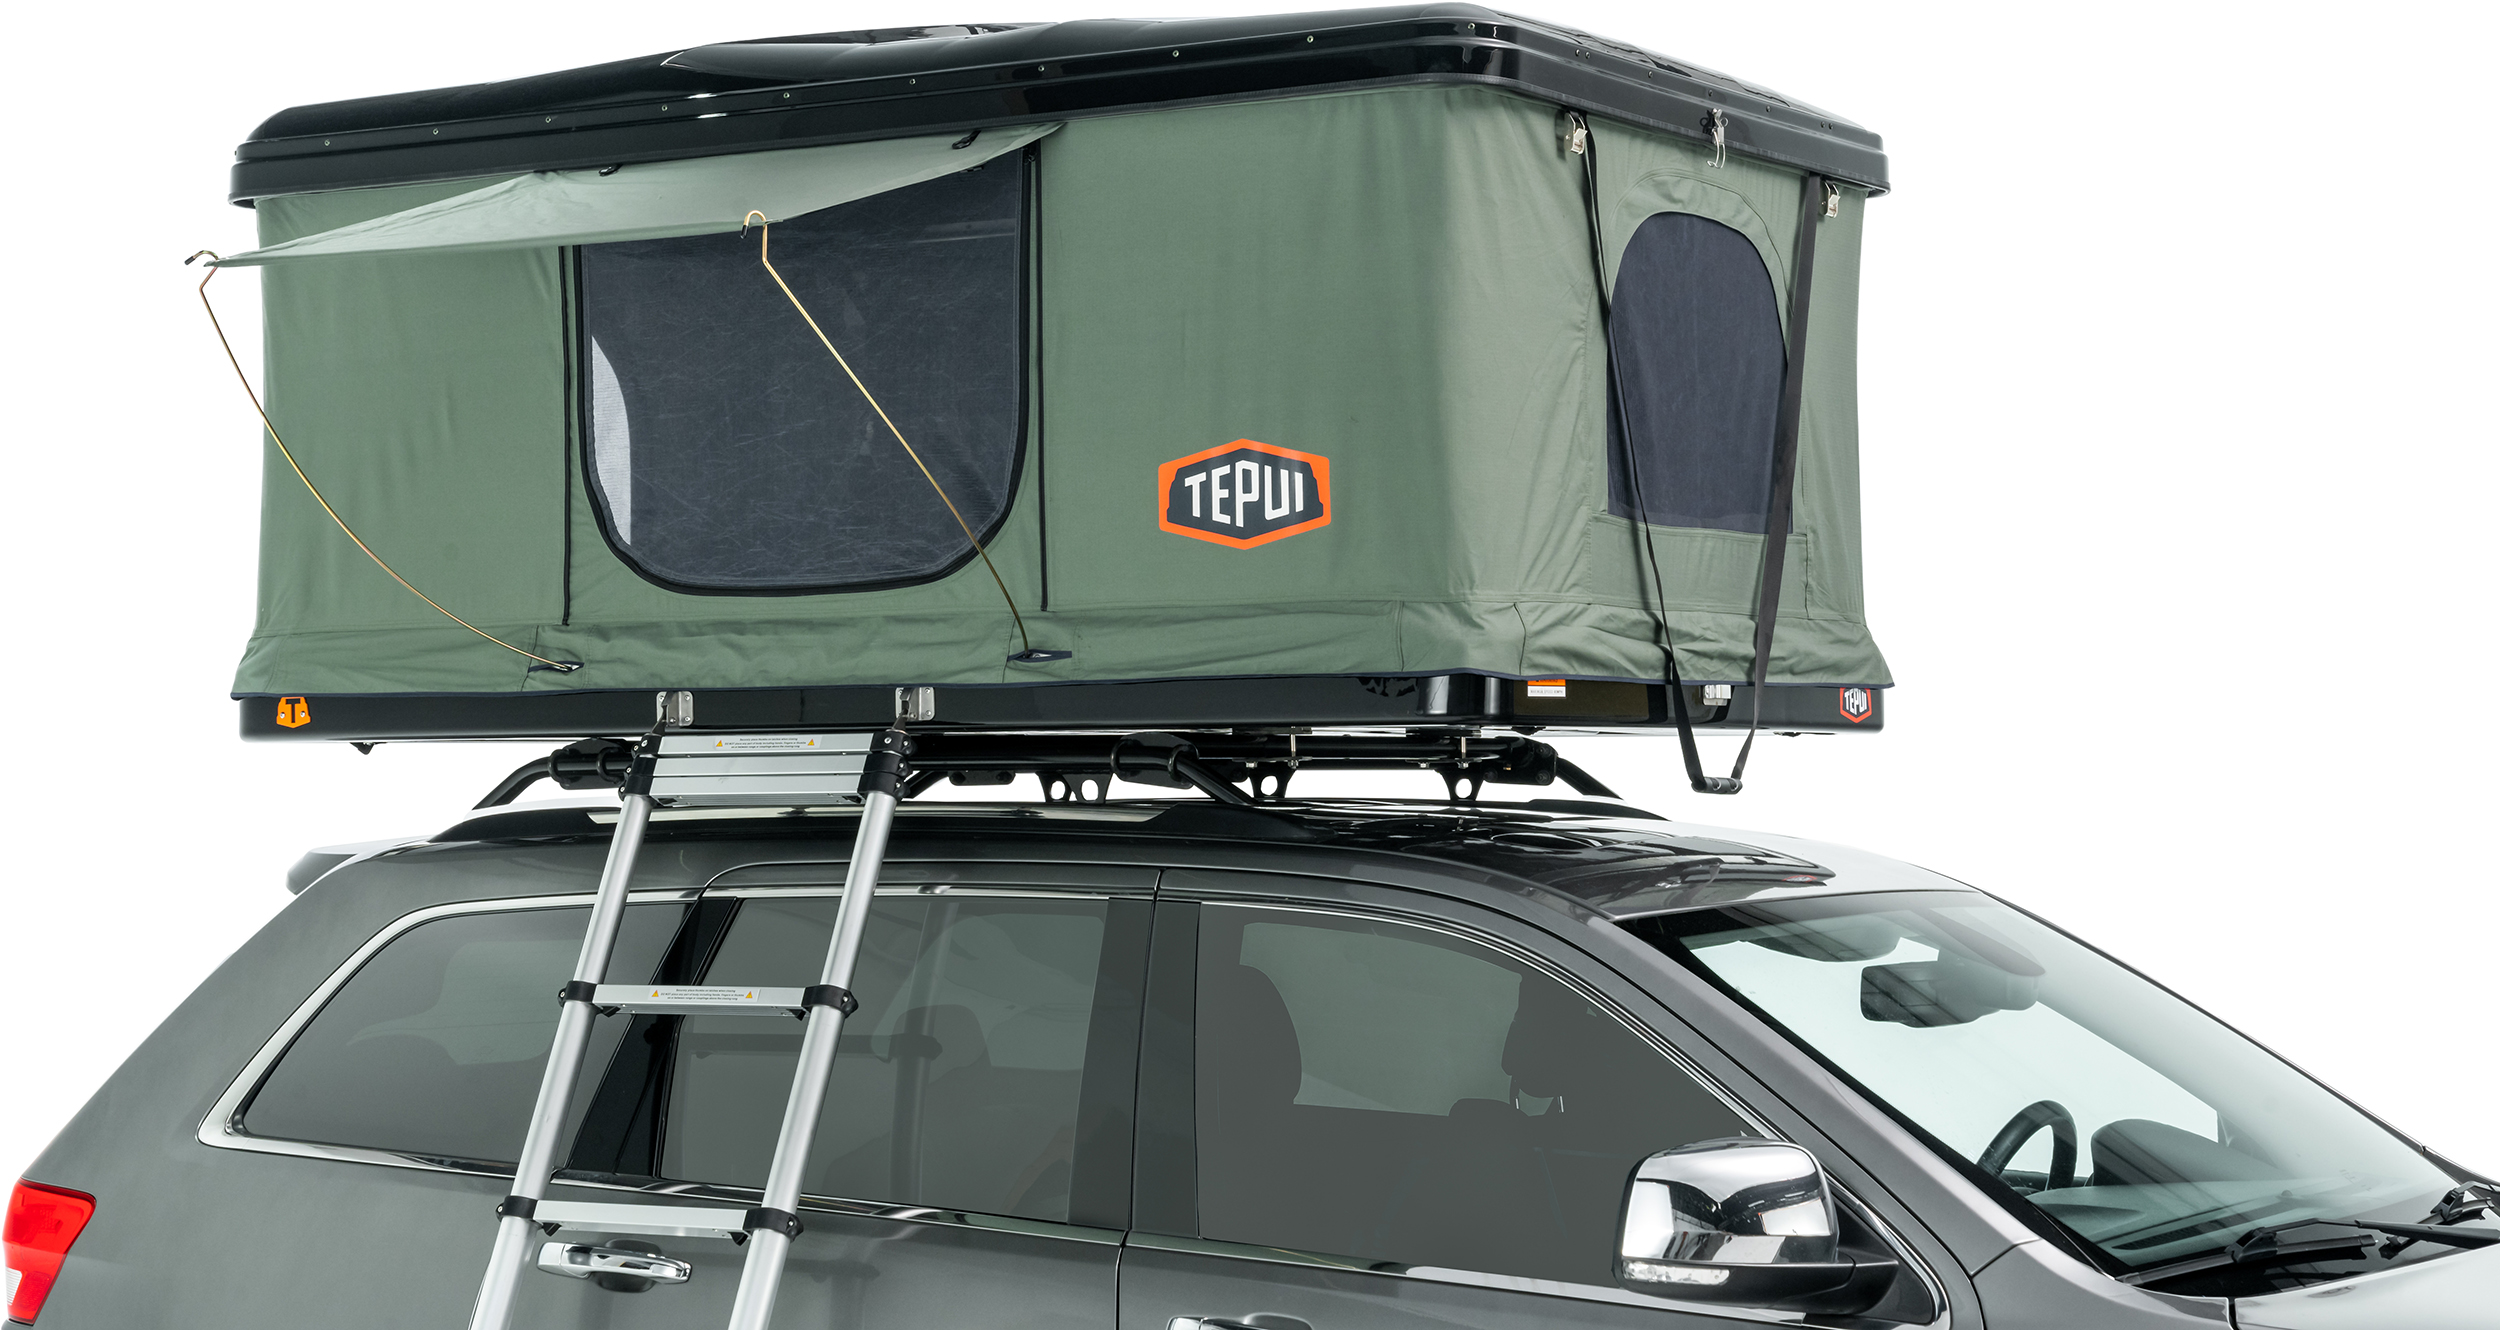 Tepui Hybox 2-Person Rooftop Tent | MEC